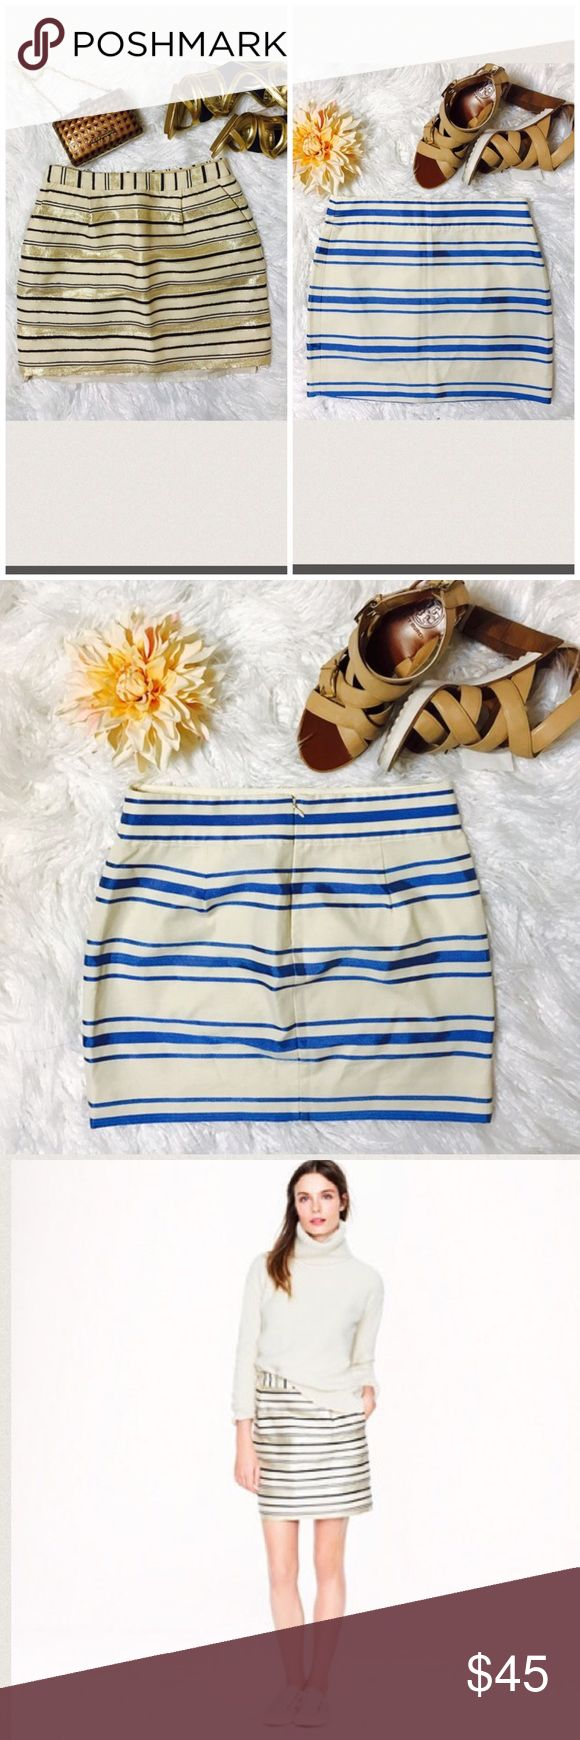 """J.Crew 2 in 1 J.Crew Striped. S75-This J.Crew Outlet skirt is a lovely jacquard in cerulean blue and white. The blue stripes provide a satiny sheen against the white canvas background. Sits at hip. Back zip. Unlined. Laid flat across @ waist: 14"""", Length: 15"""". 54% cotton, 46% Polyester. Machine wash cold, gently cycle. Tumble dry low.  S73-Metallic threads make everything more festive. Cotton/silk. Back zip. Slant pockets.Lined. Dry clean. Import. Laid flat across @ waist: 13.5"""", Length…"""